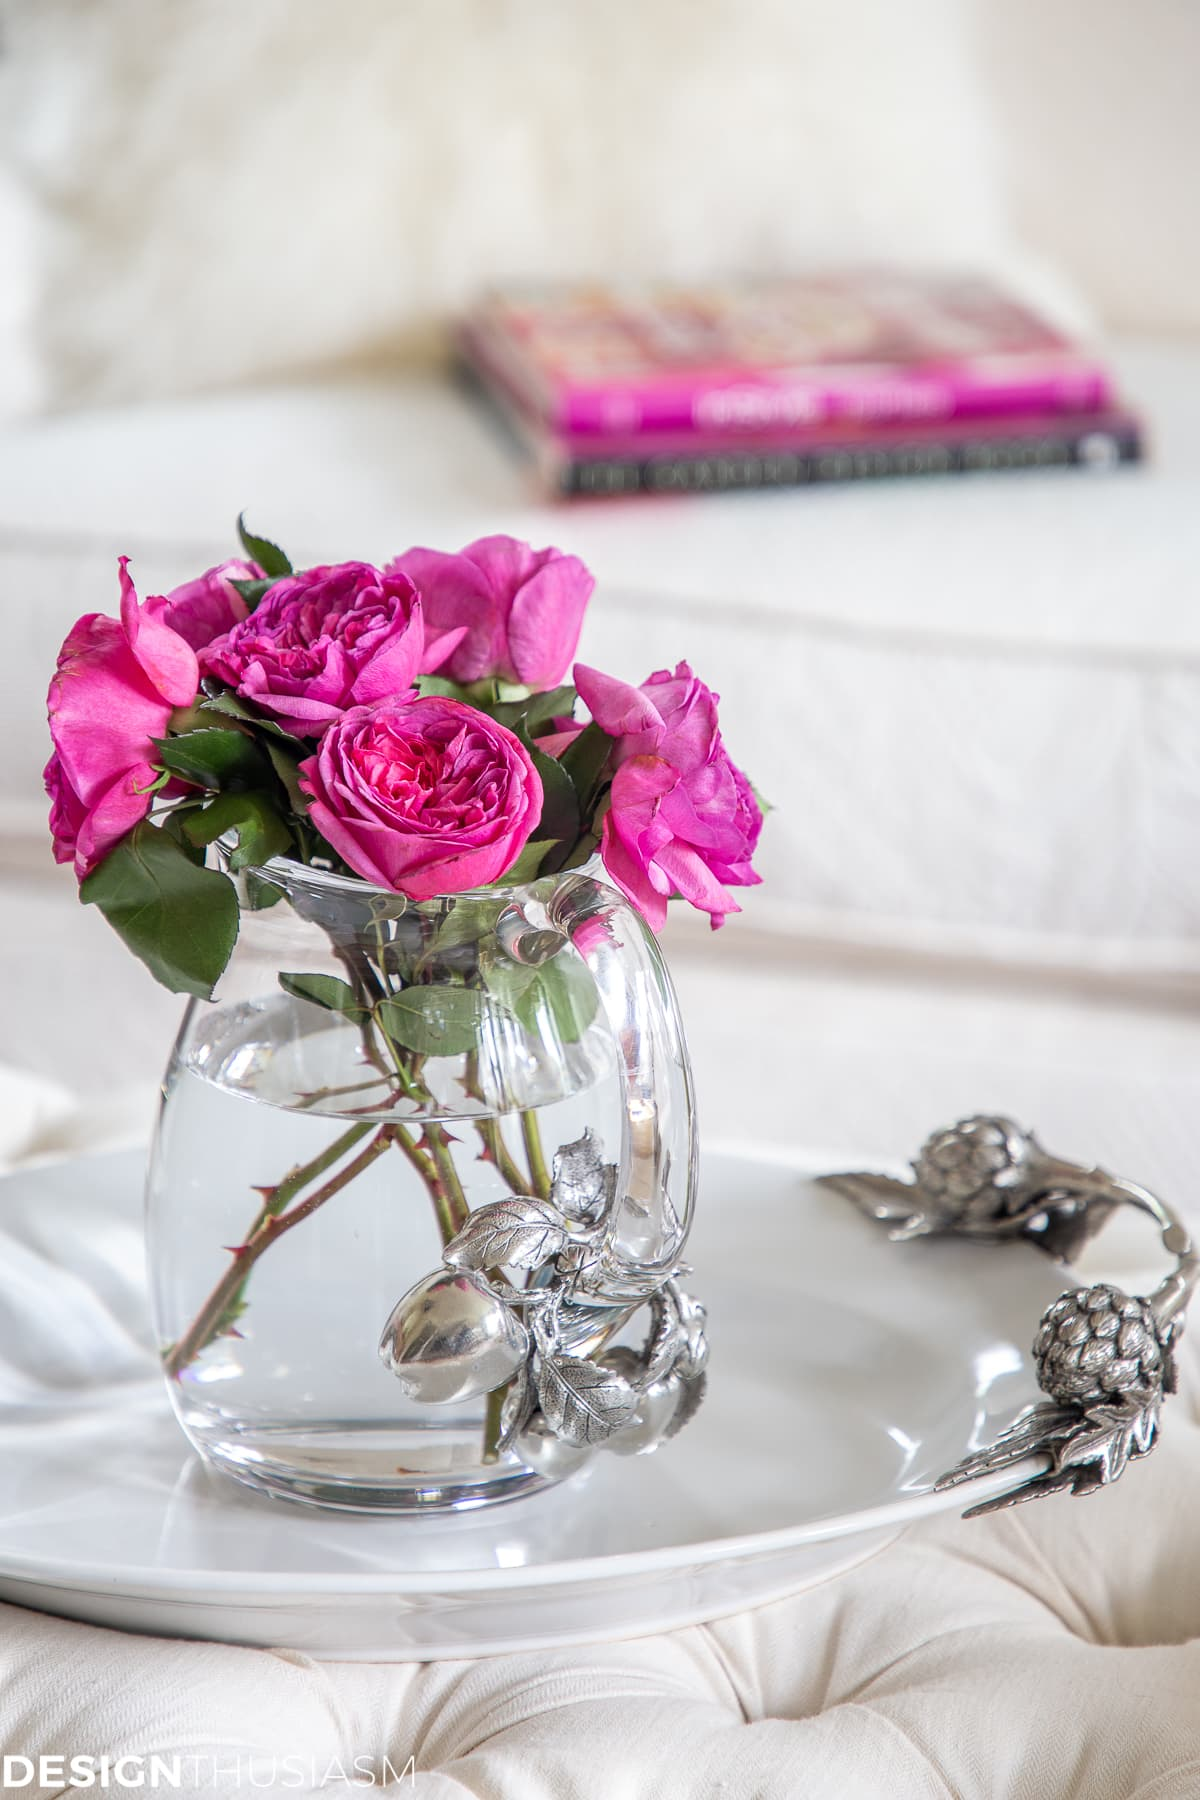 living room decor with pink roses in a pitcher